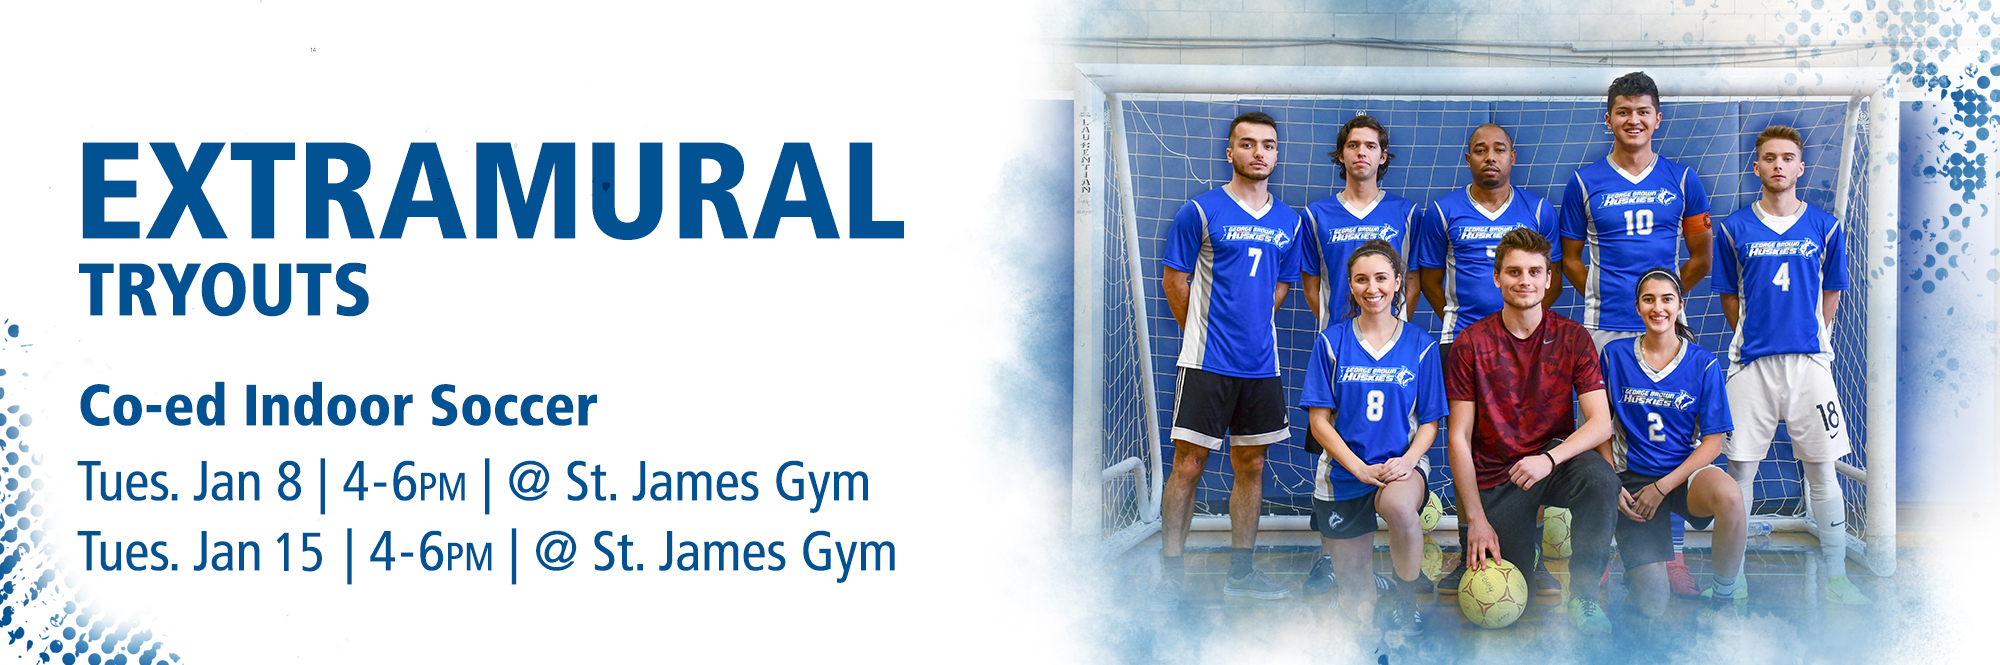 TRYOUT DATES SET FOR GEORGE BROWN CO-ED EXTRAMURAL INDOOR SOCCER TEAM